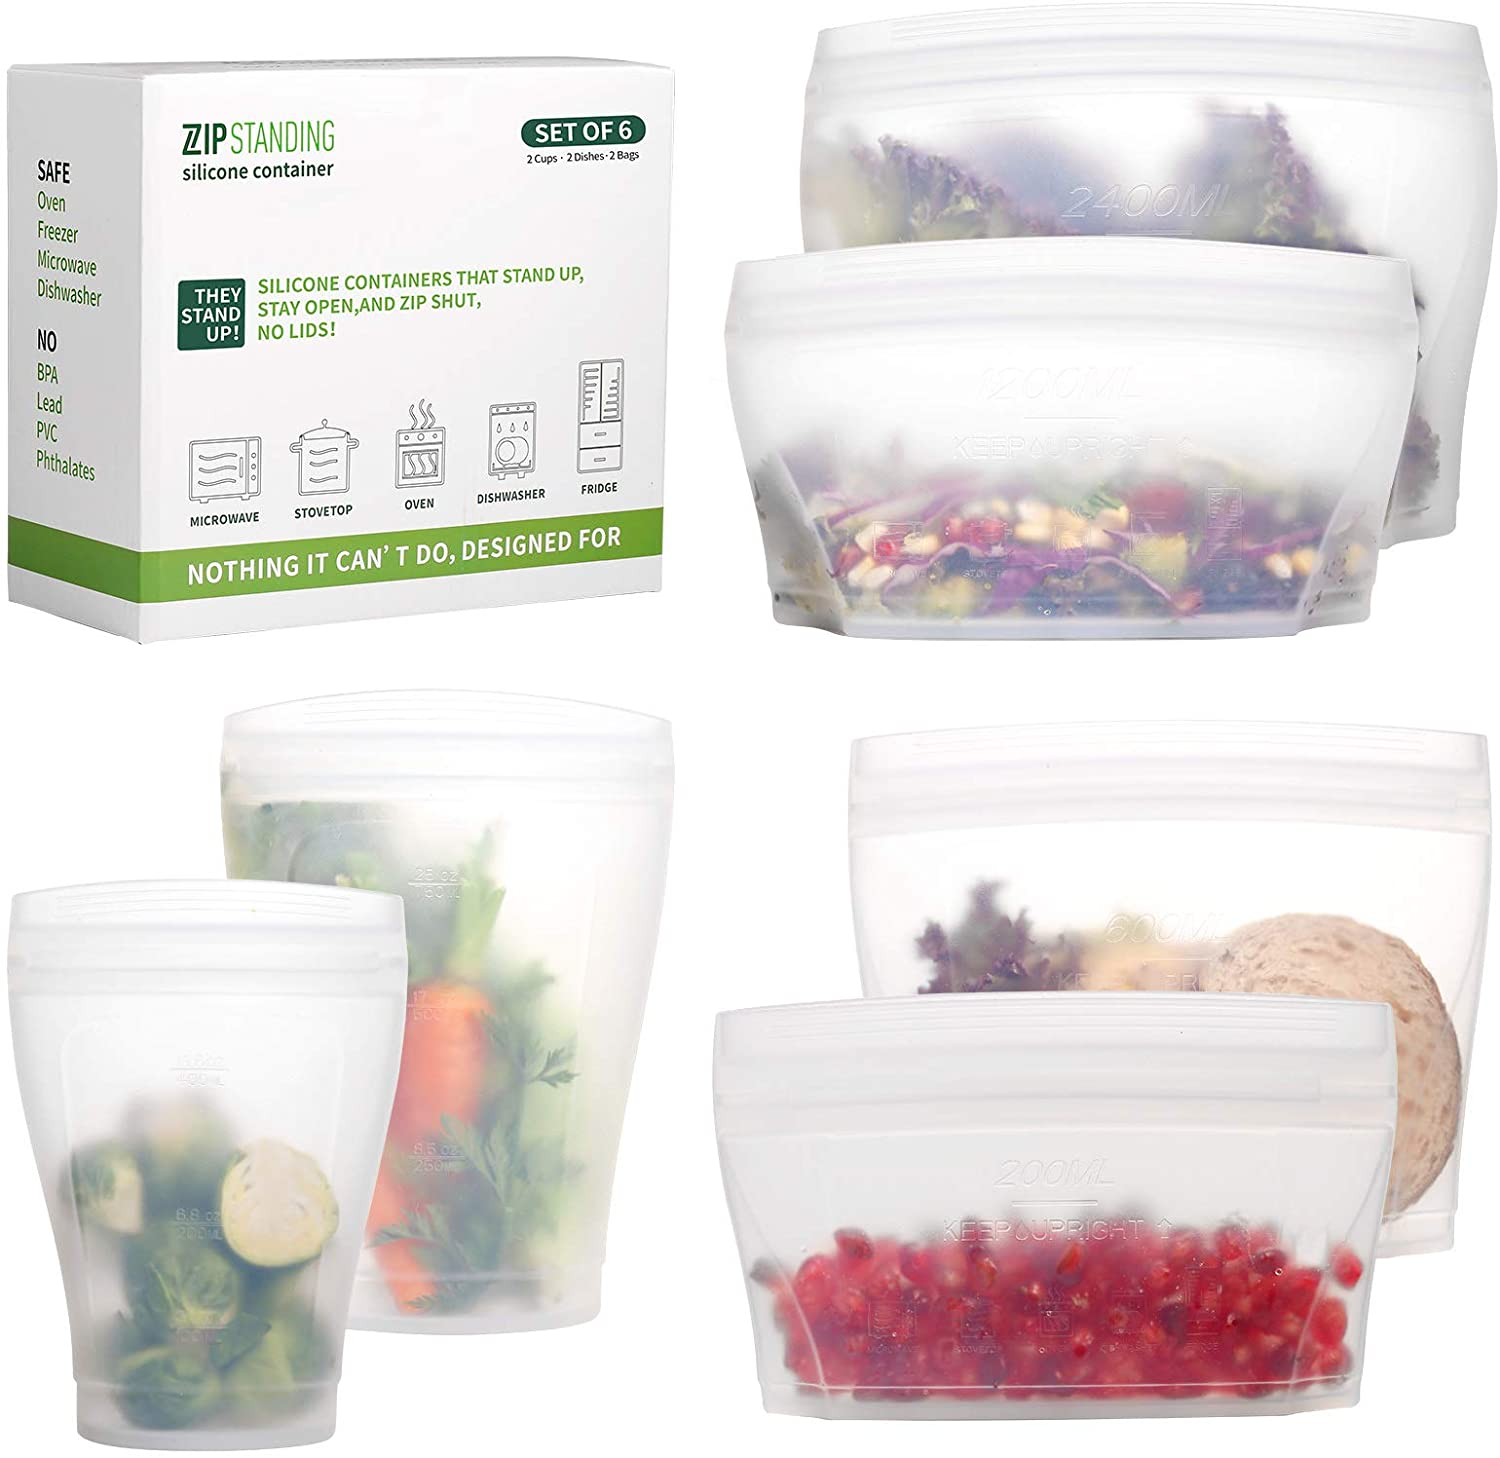 Zip Standing Reusable food Silicone Containers - Complete SET with 2 Cups, 2 Dishes, 2 Storage Bags. Larger Capacity, Dishwasher, Microwave, Freezer Safe. Healthy Food Grade.(white)